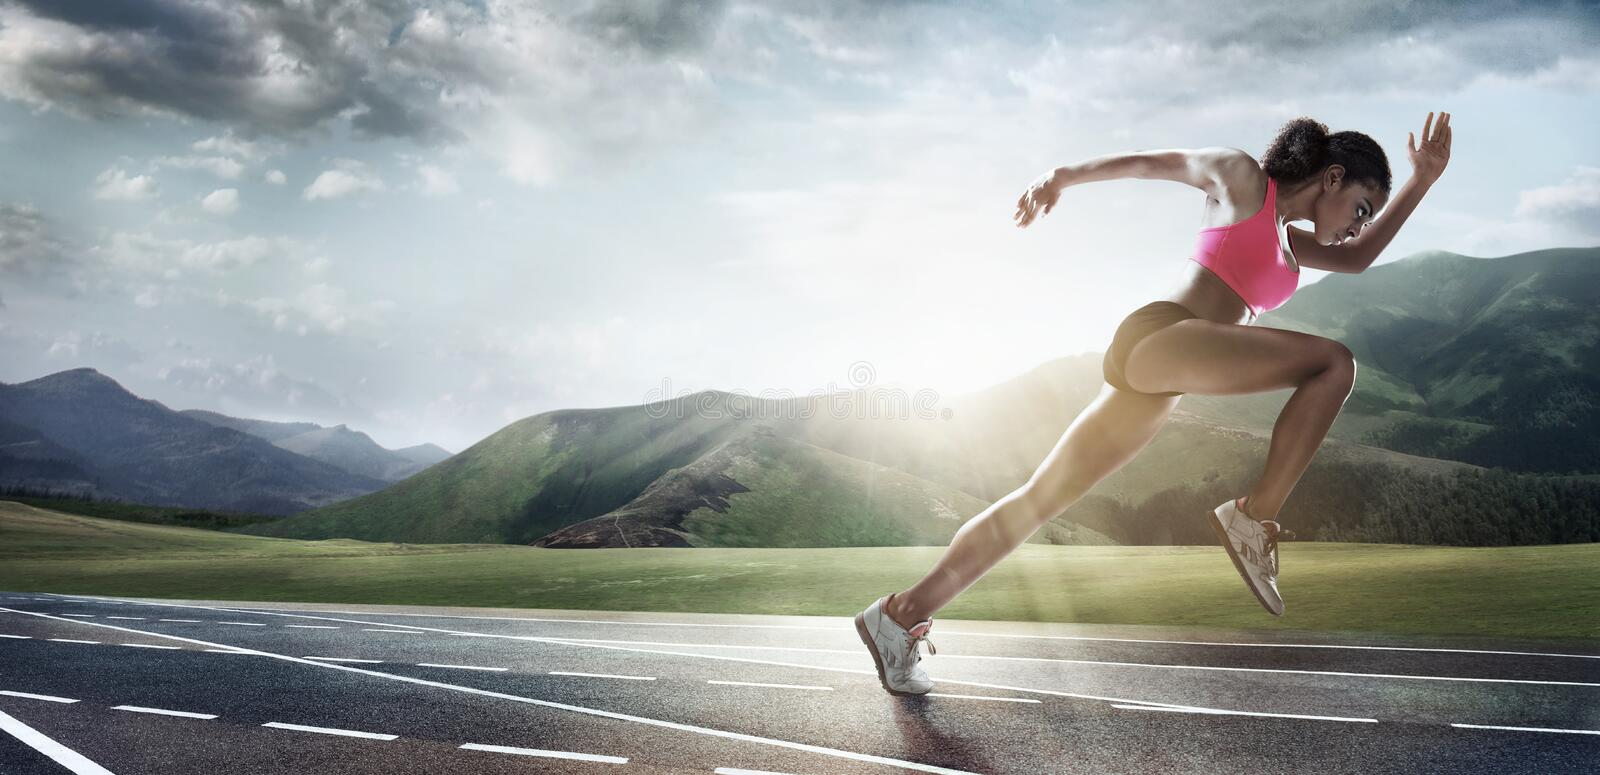 Download Sport backgrounds. Runner. stock image. Image of backgrounds - 92340463